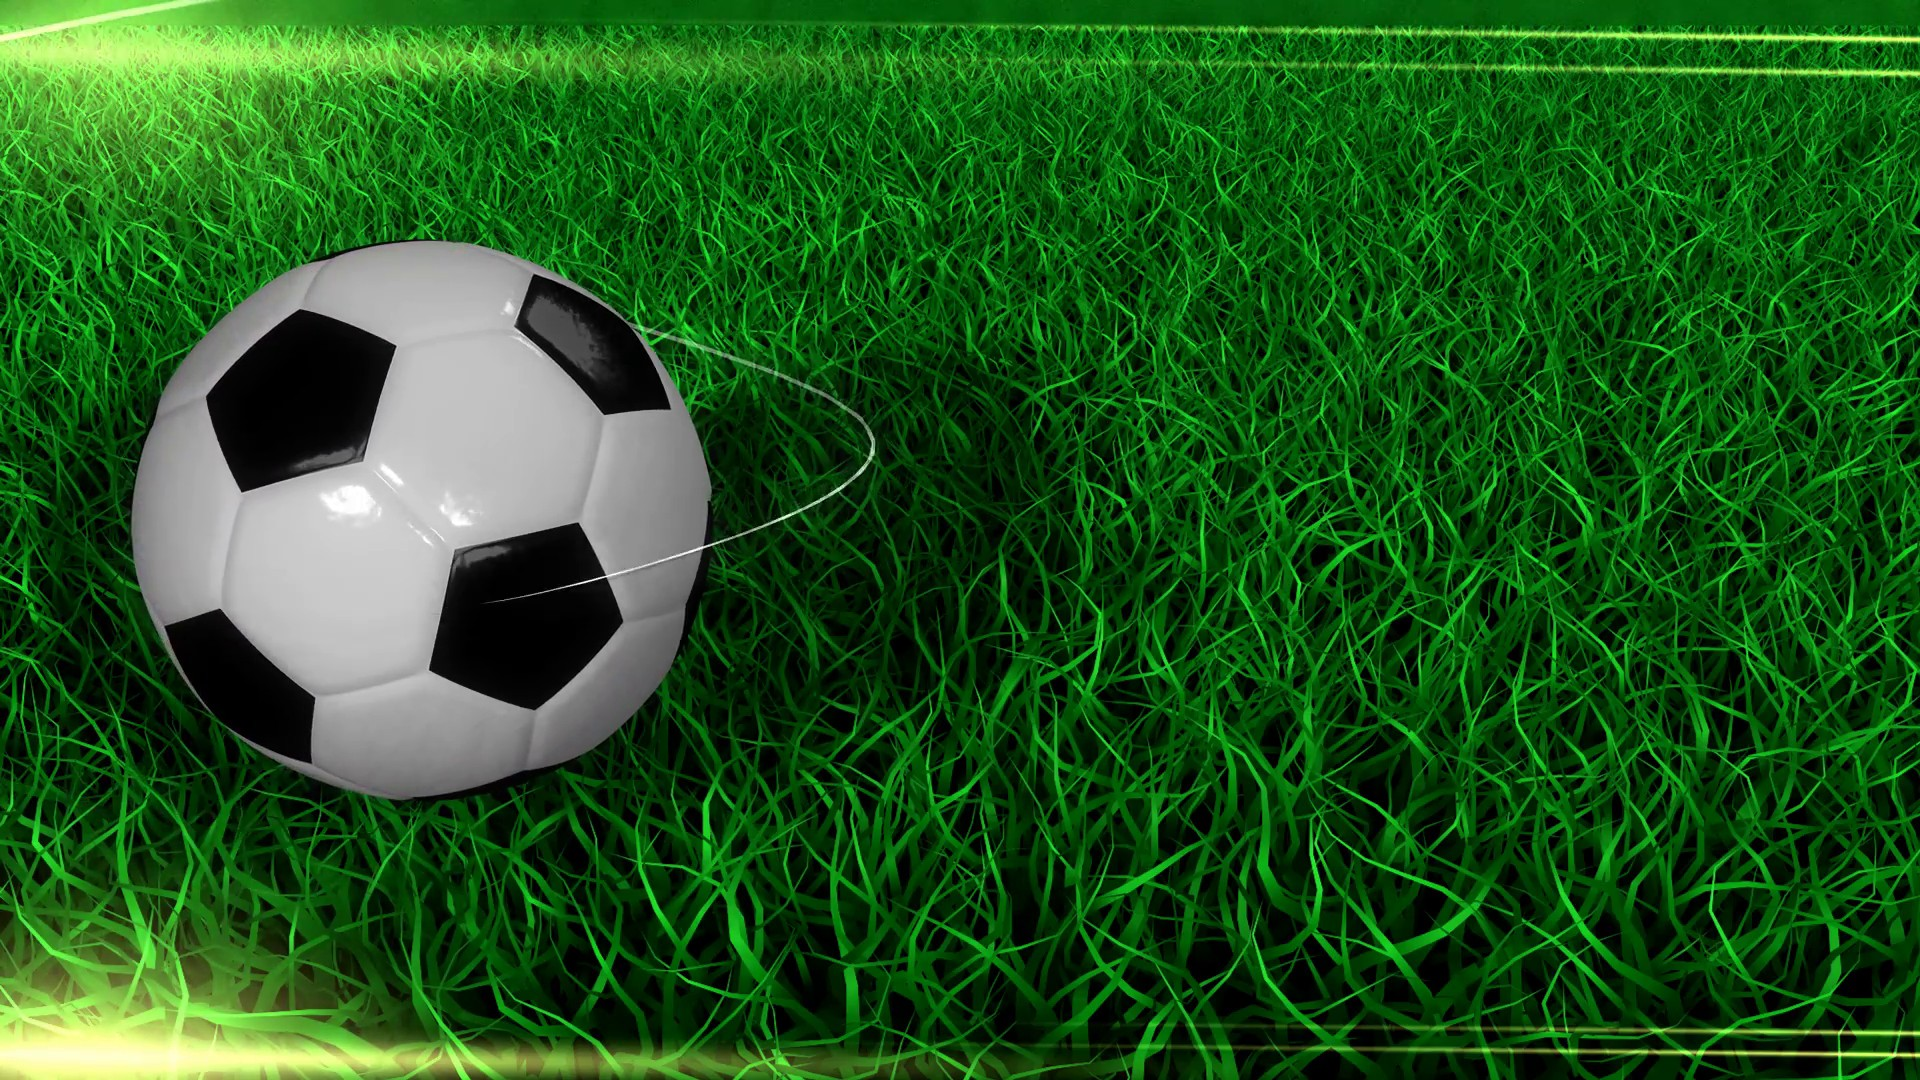 Free Sports Wallpaper For Android: Sports Background ·① Download Free High Resolution